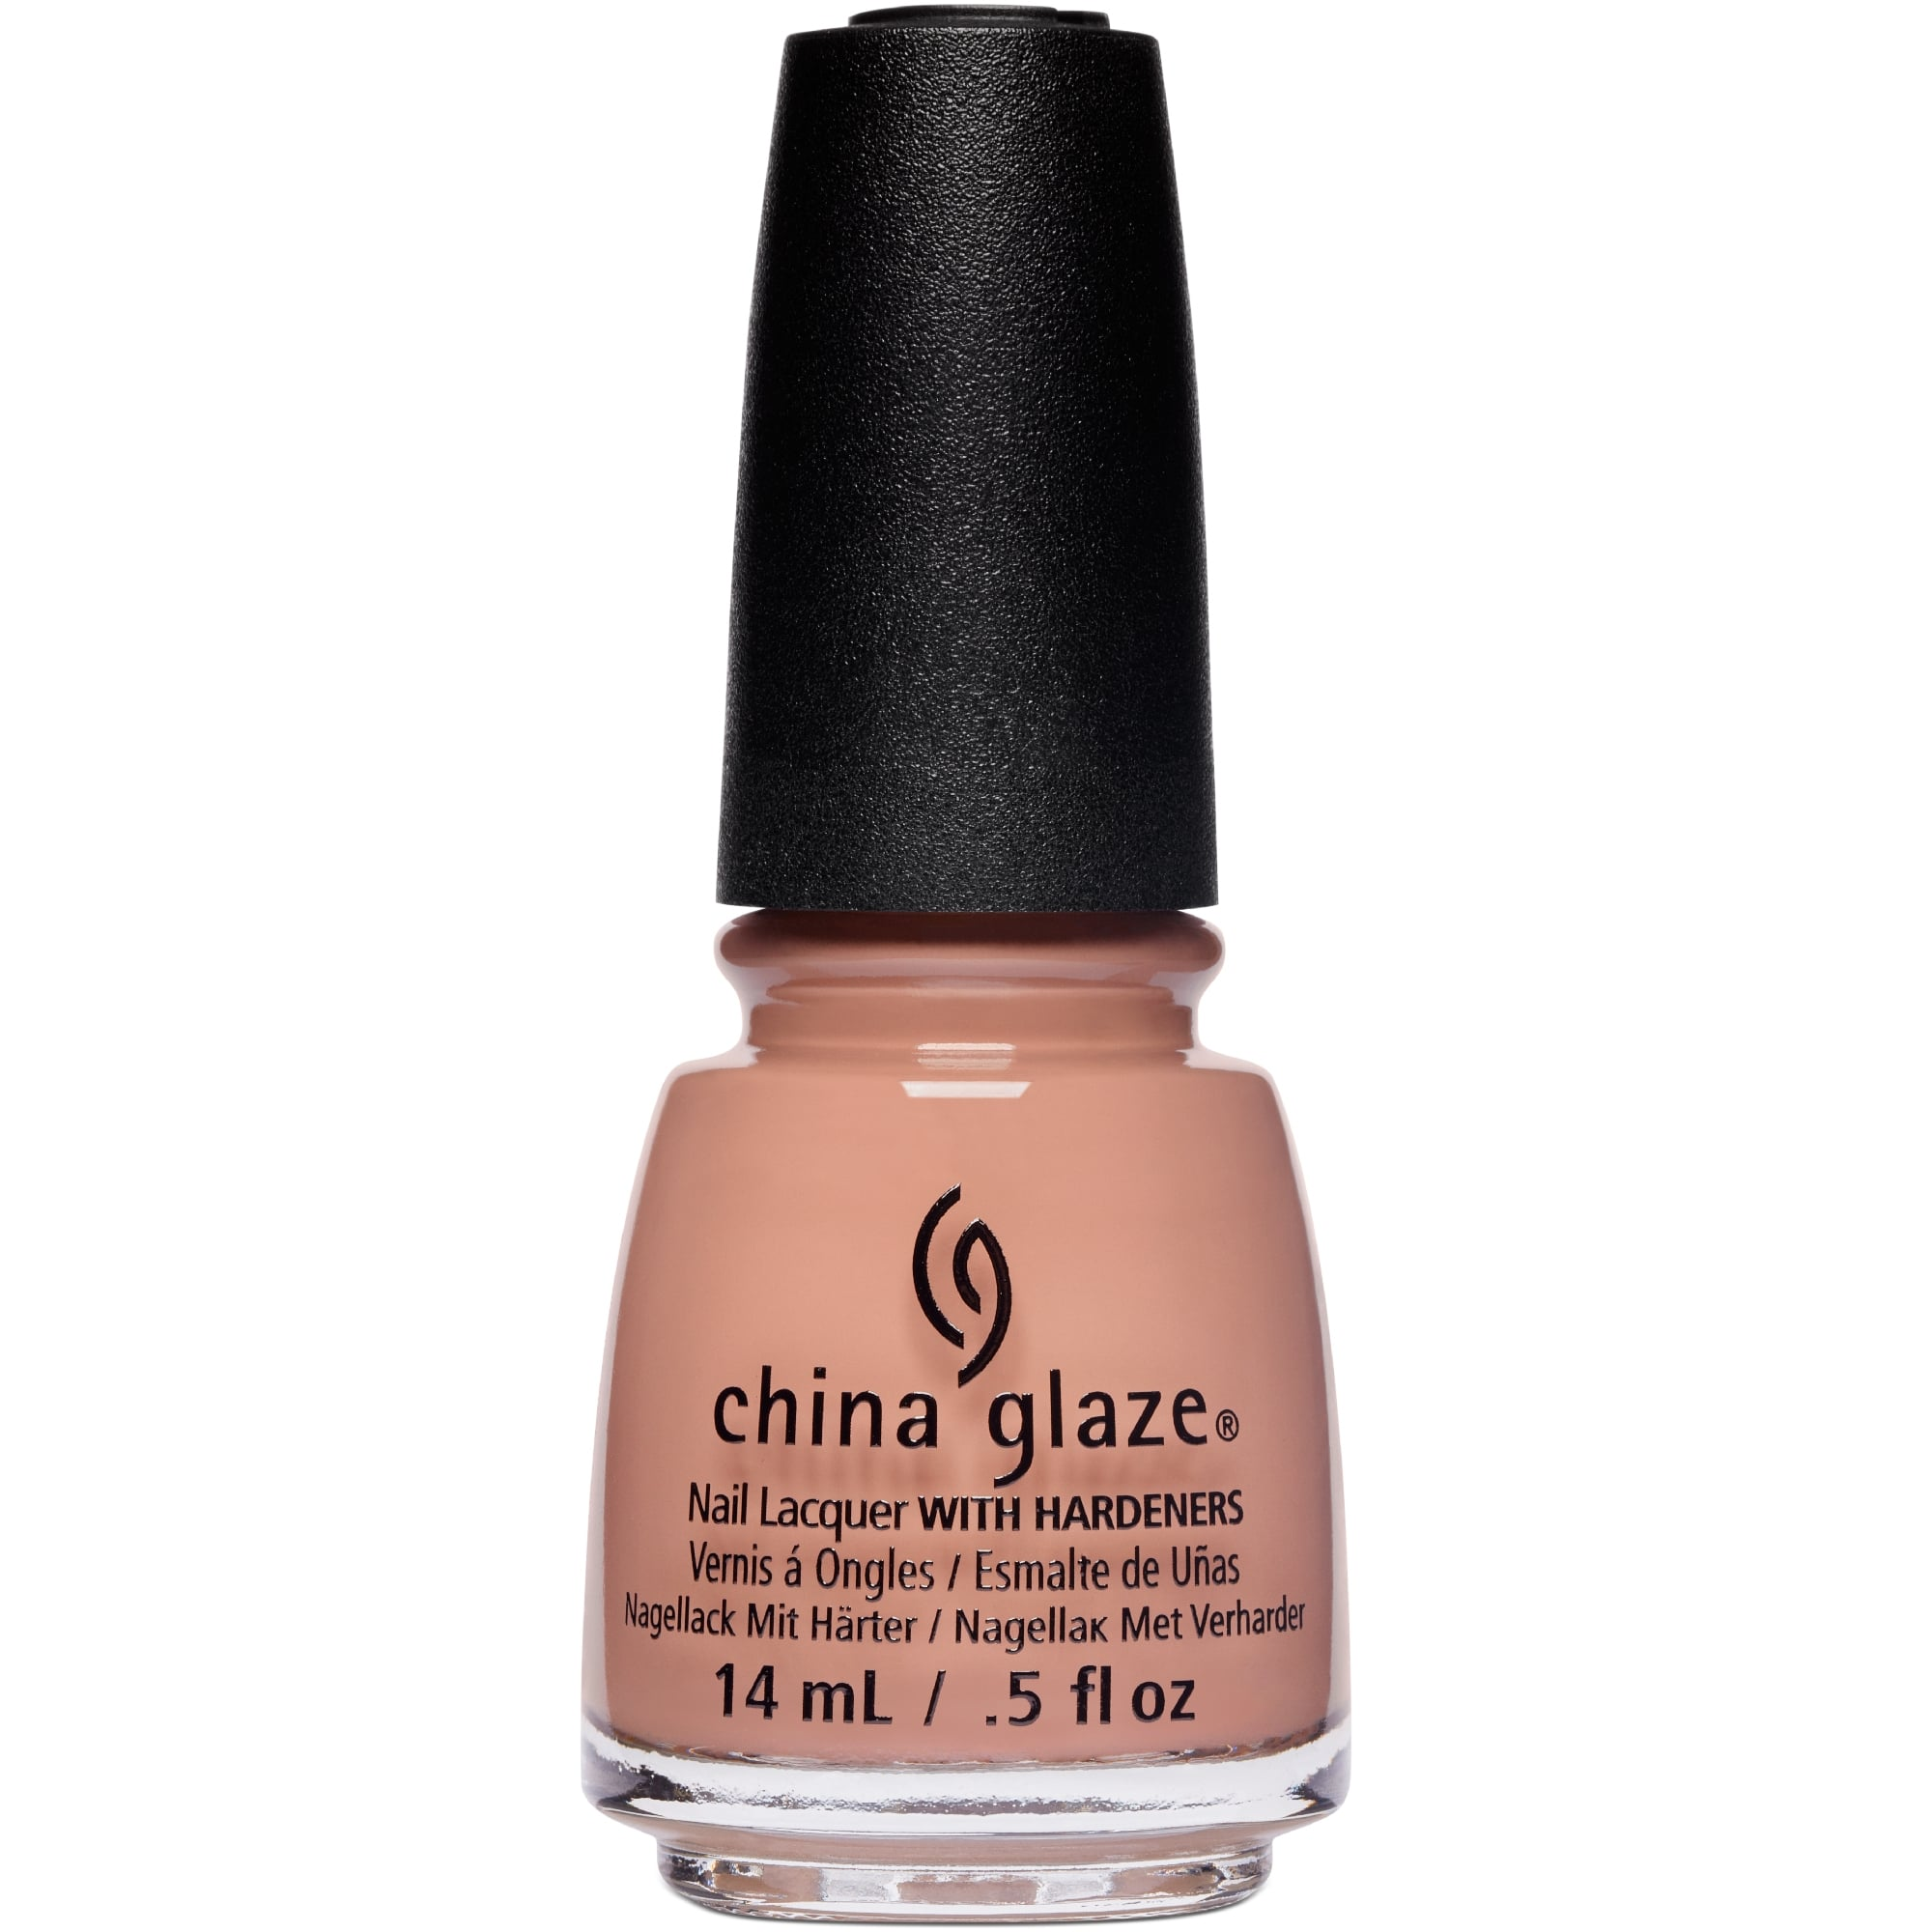 China Glaze Nudes Spring Nail Polish Collection - A Whole Latte Fun!